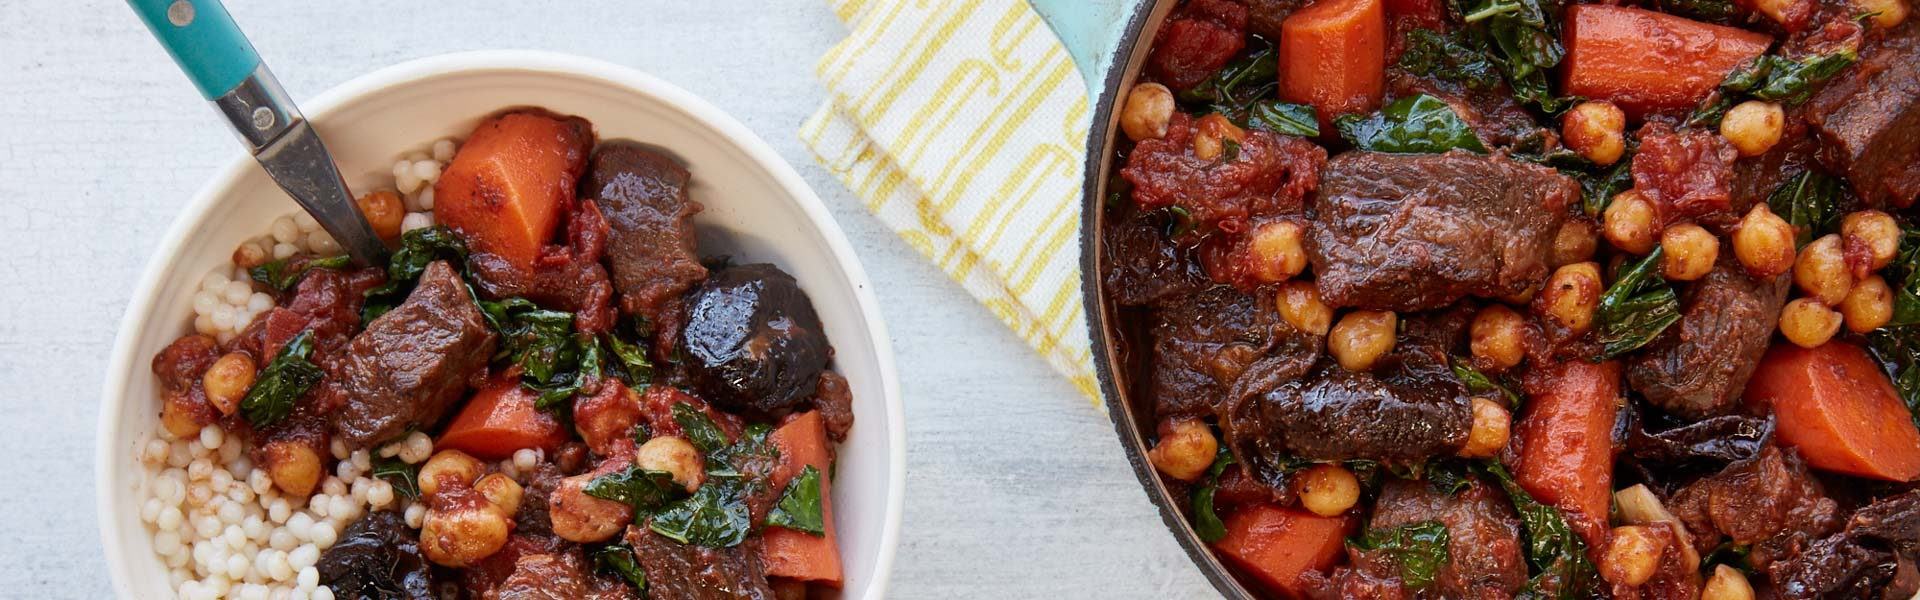 <p>Dried Plums, garam masala, and cinnamon subtly add a spicy sweetness to this savory tomato-filled beef stew while chickpeas and kale balance the richness and make the braise into a complete meal. For even deeper flavor, add 15 ml / 1 tablespoon Prune Juice Concentrate to the braising liquid when you add the wine.</p>